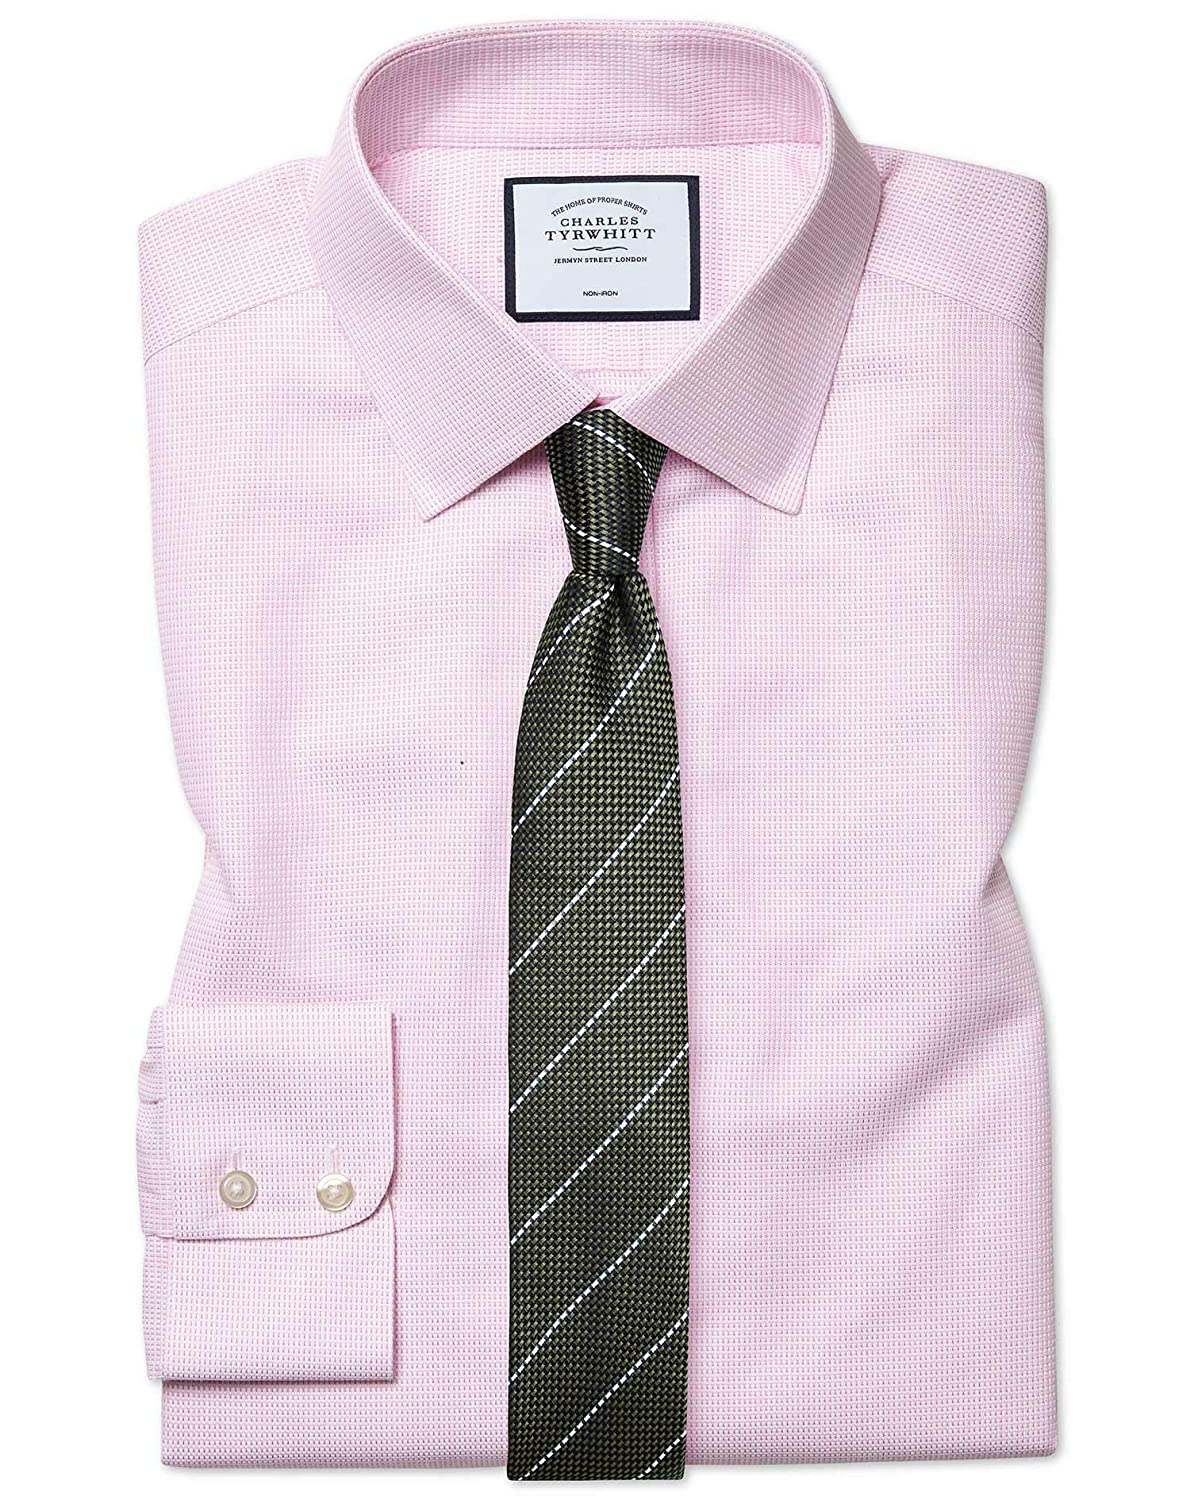 Chemise à Motif à Effet Tirets Rose Extra Slim Fit Sans Repassage   Rose (Poignet Simple)   15   33